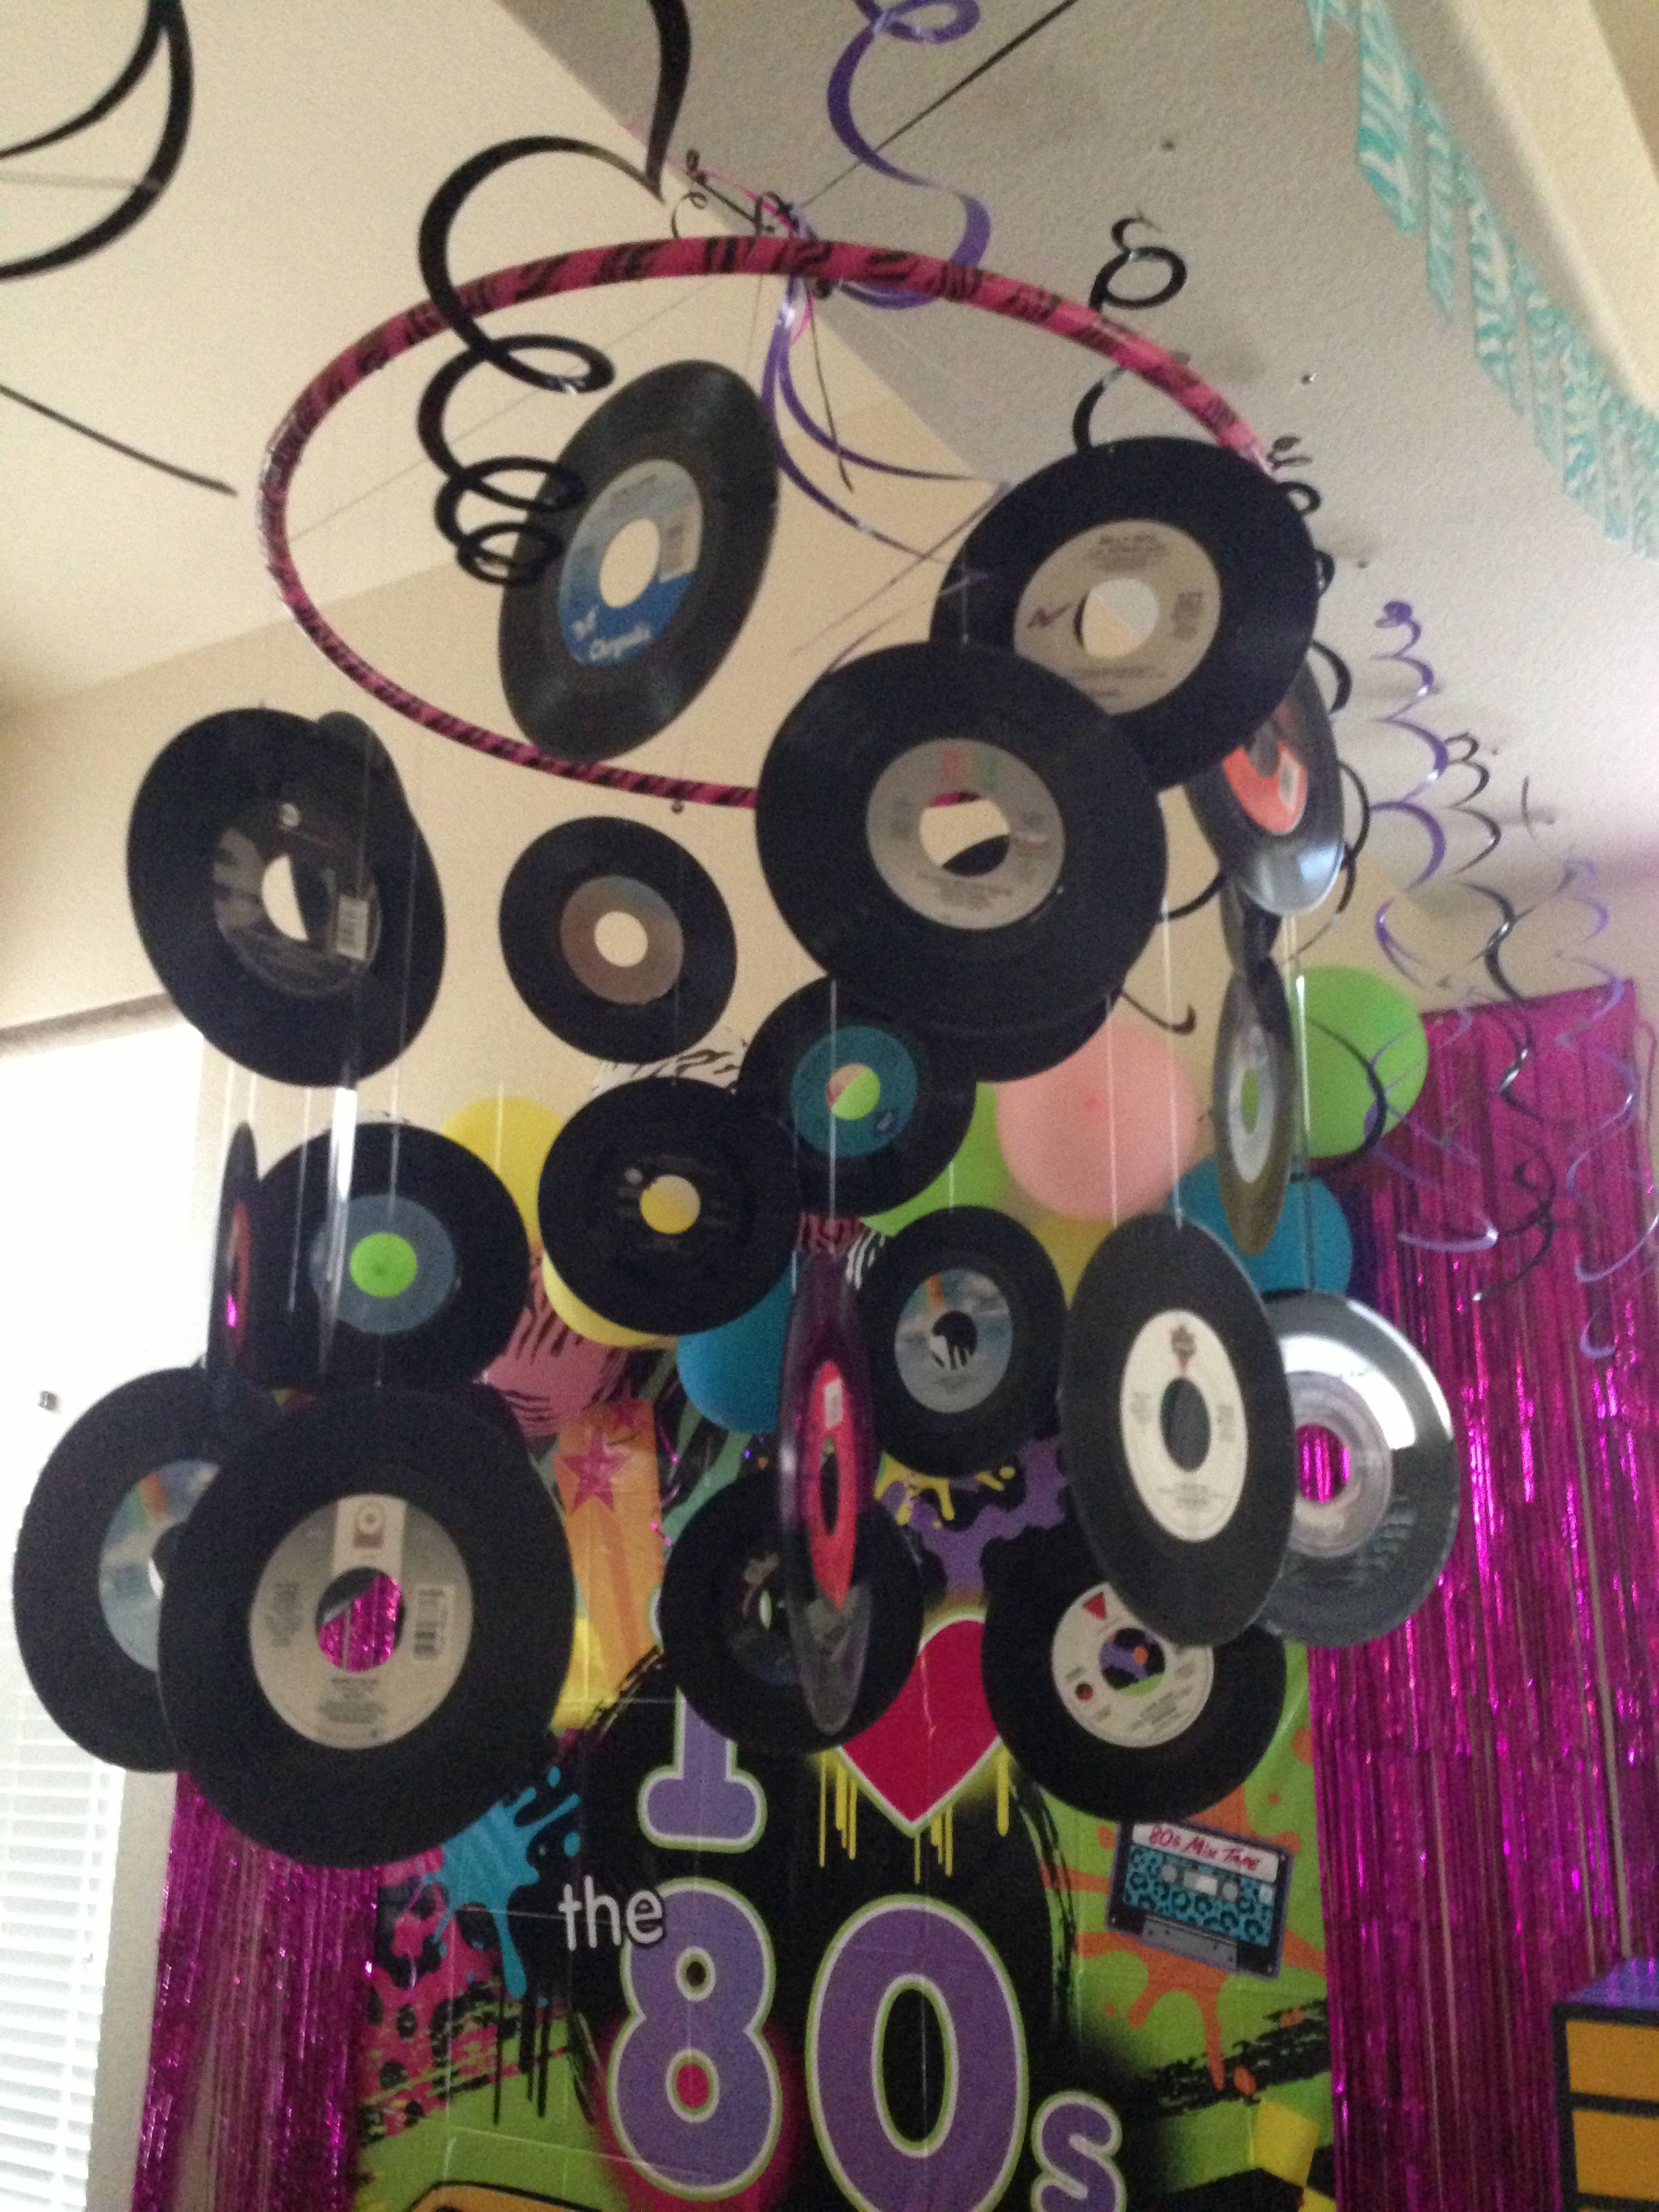 My 80S Party Decorations  45 Rpm Record Chandelier